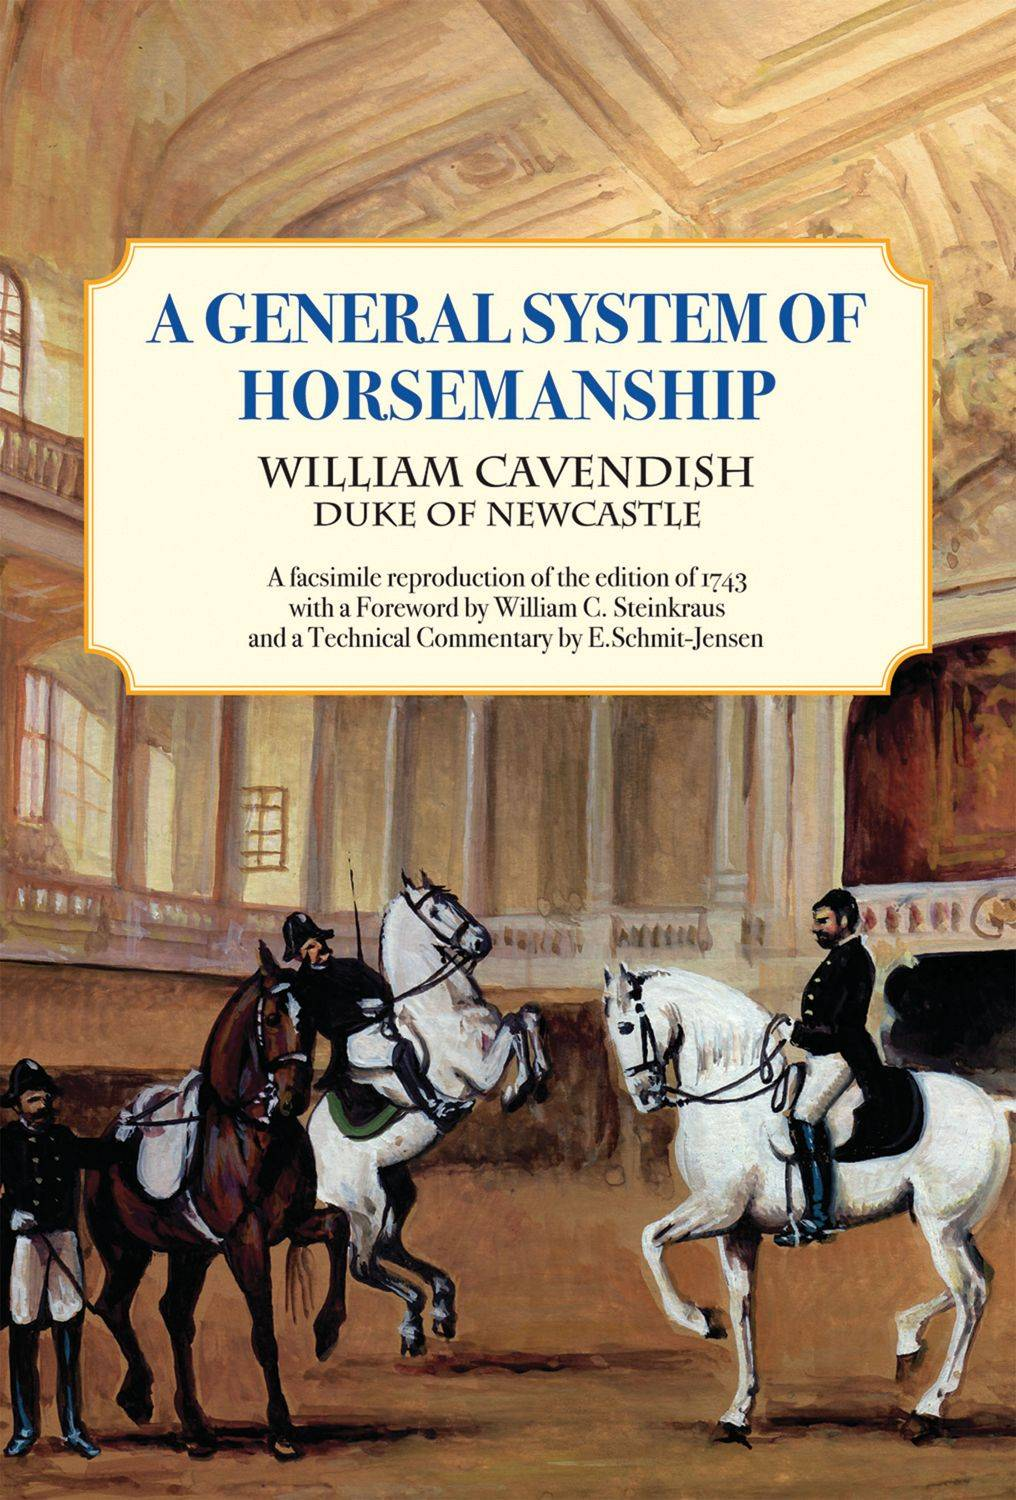 General System of Horsemanship by William Cavendish